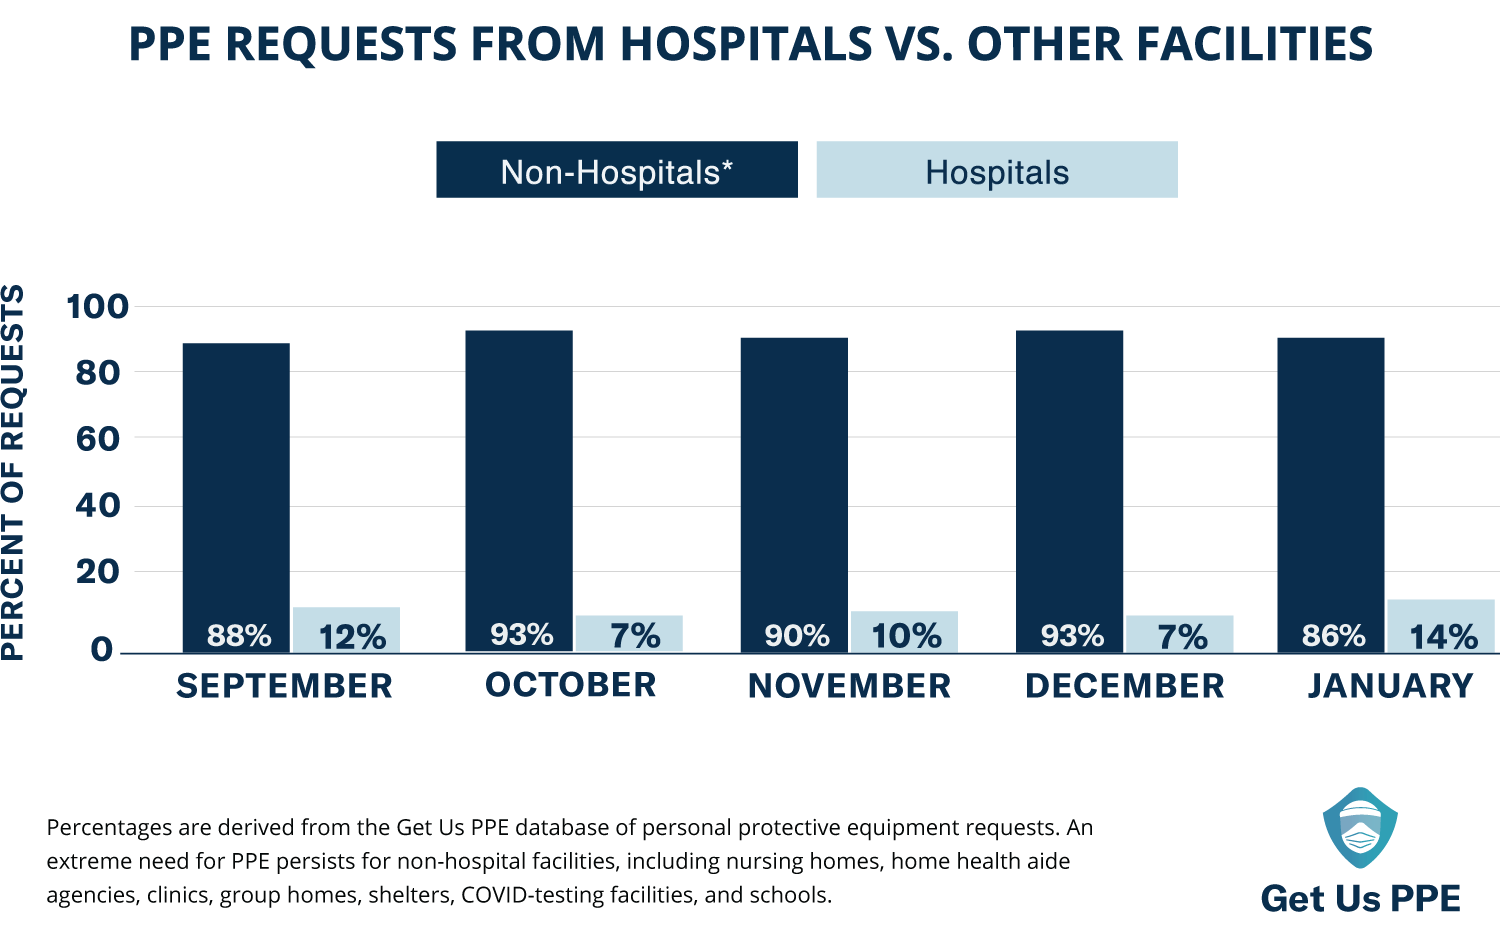 Chart: Get Us PPE Requests from Hospitals vs. Other Facilities Sept 2020 through Jan 2021